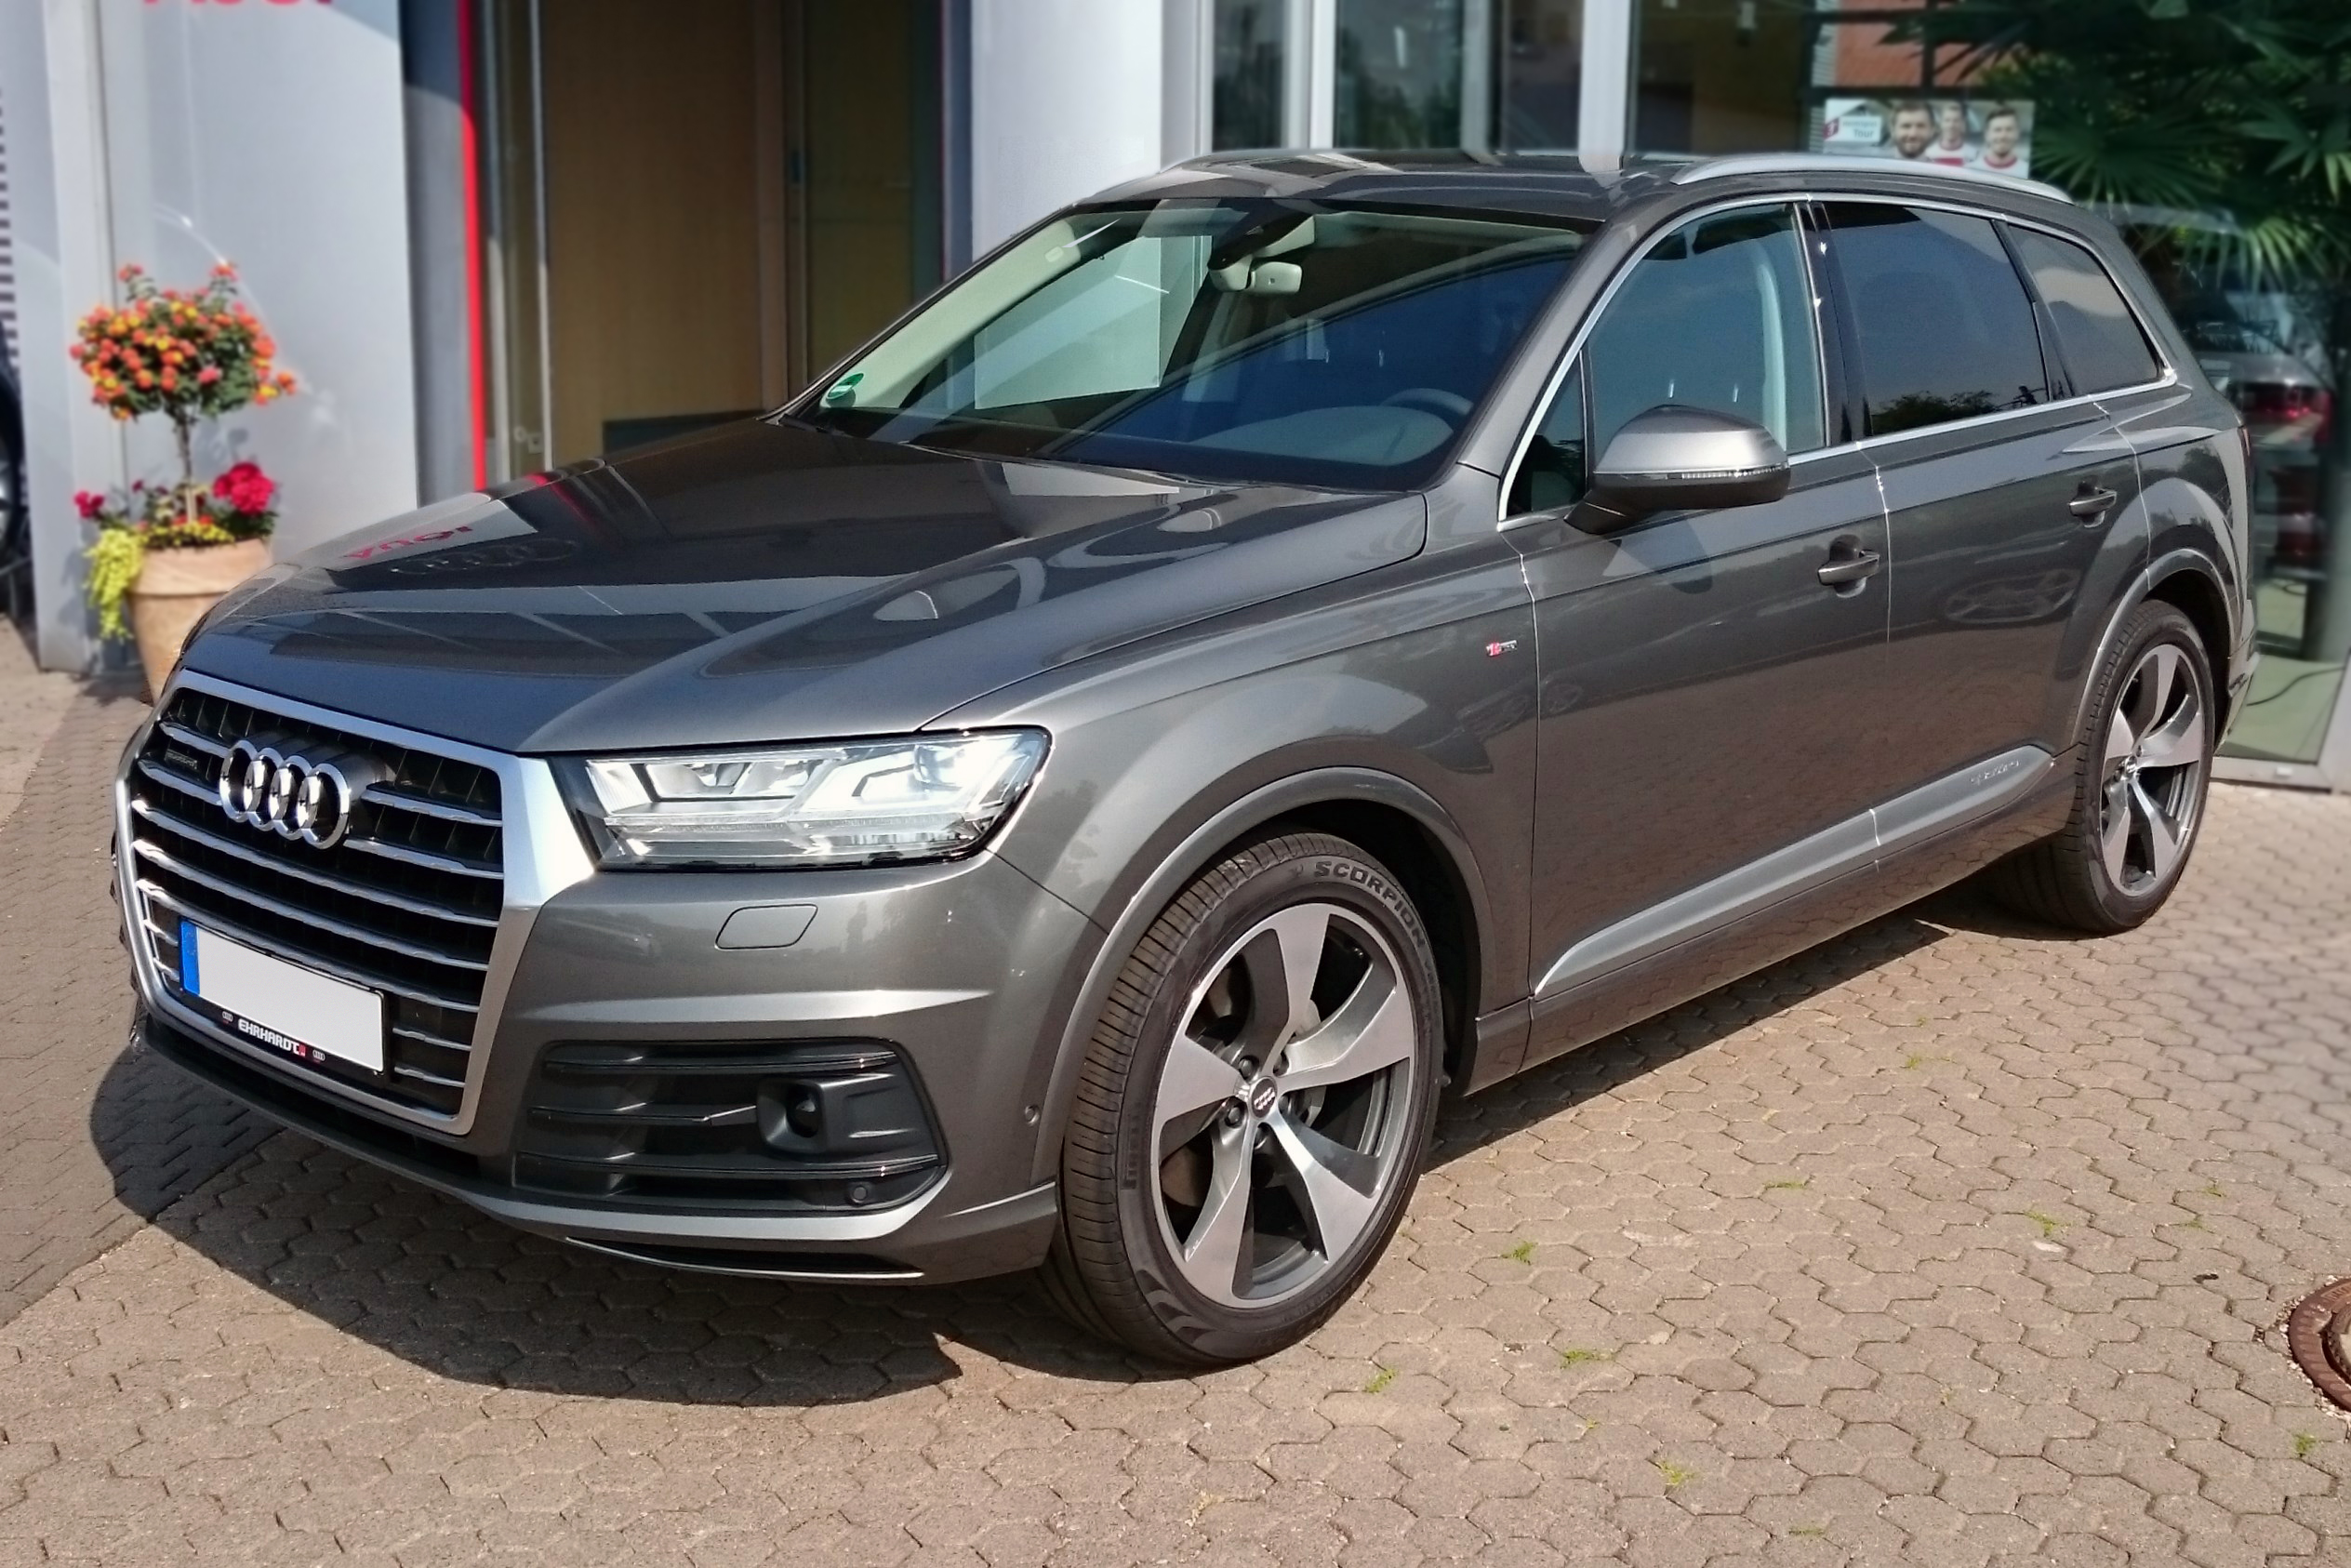 price quattro brings motor ca at show e tron jy audi autotrader tokyo hybrid new diesel and